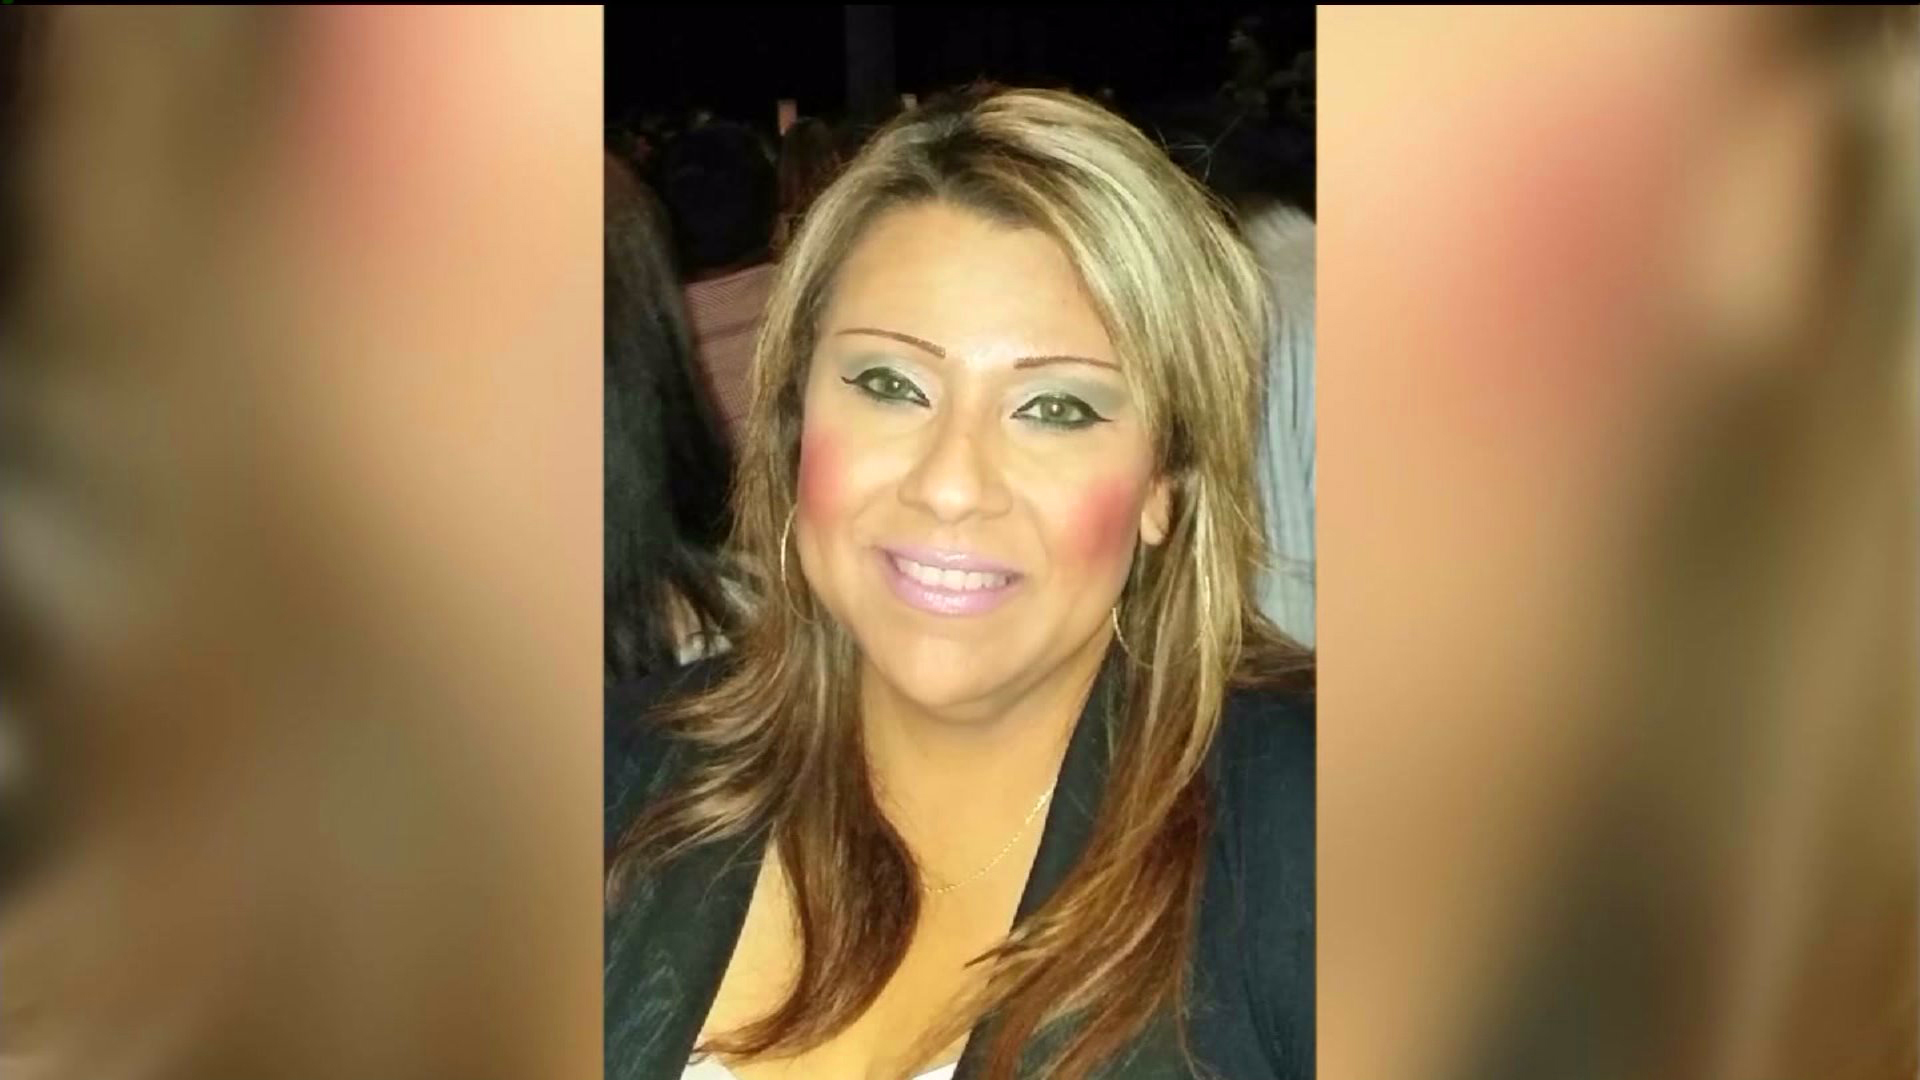 Man Pleads Not Guilty To Murder In Fatal Stabbing Of Woman